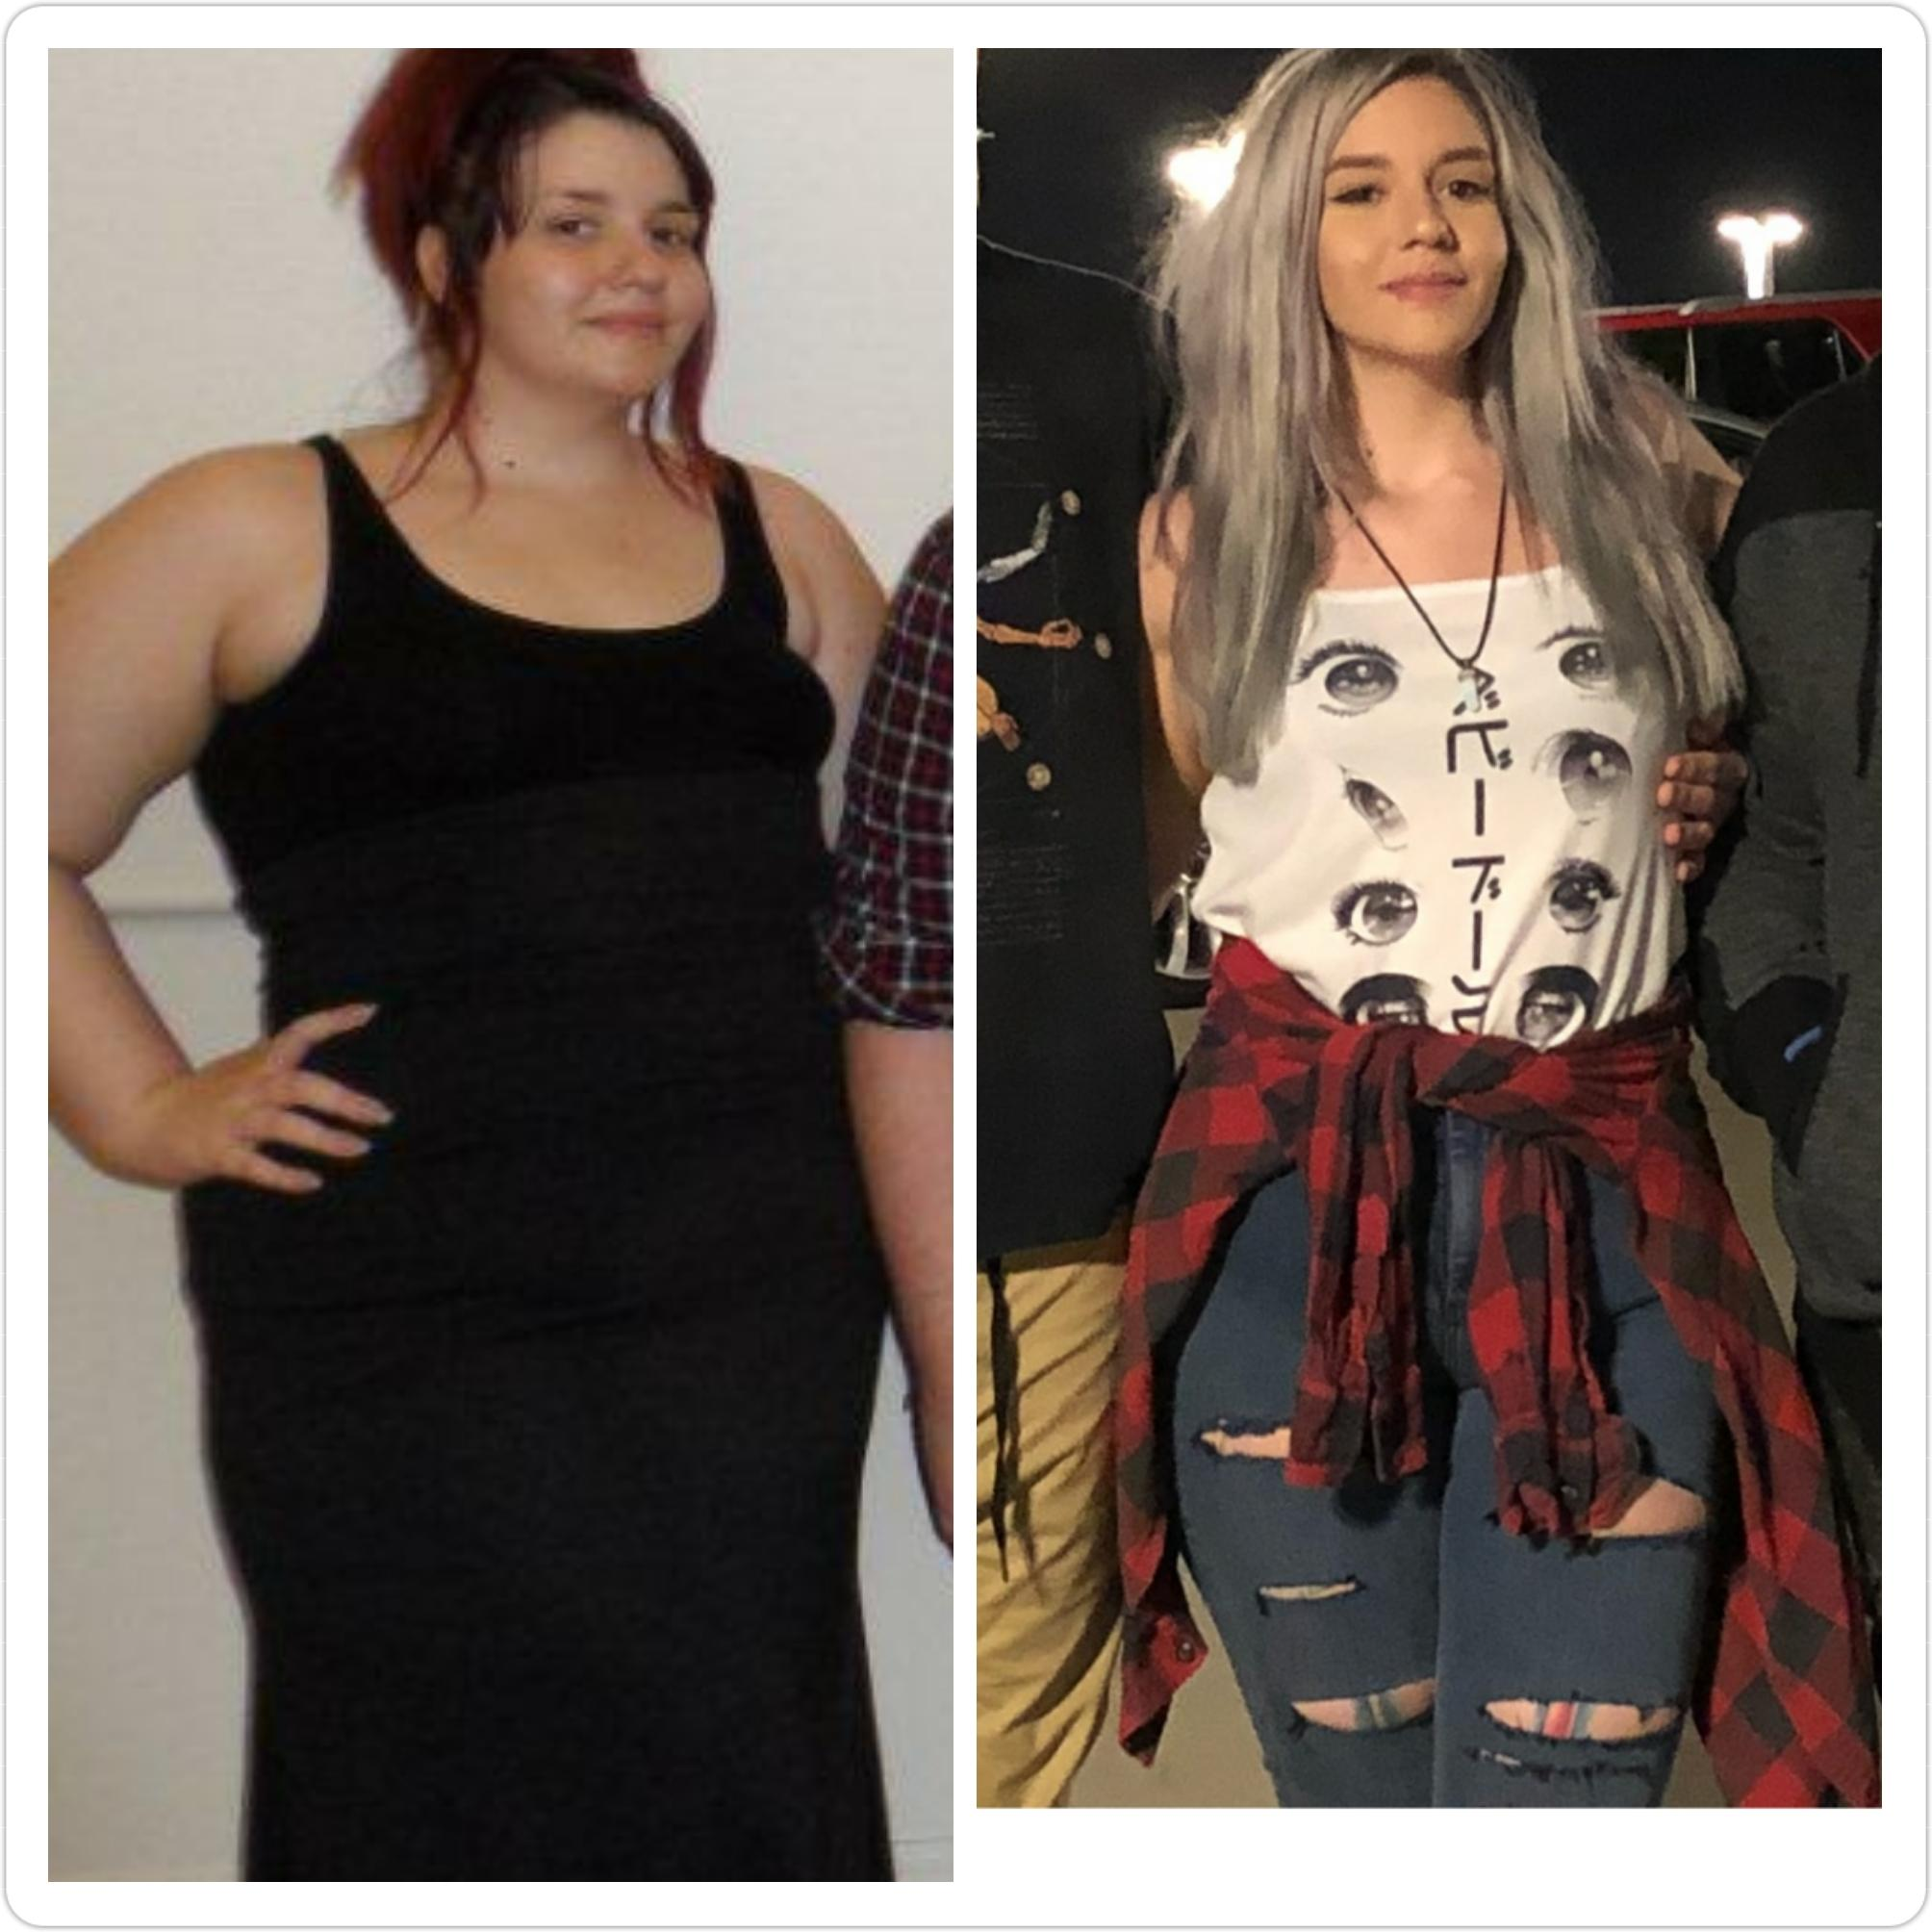 5 foot 7 Female Before and After 100 lbs Weight Loss 280 lbs to 180 lbs